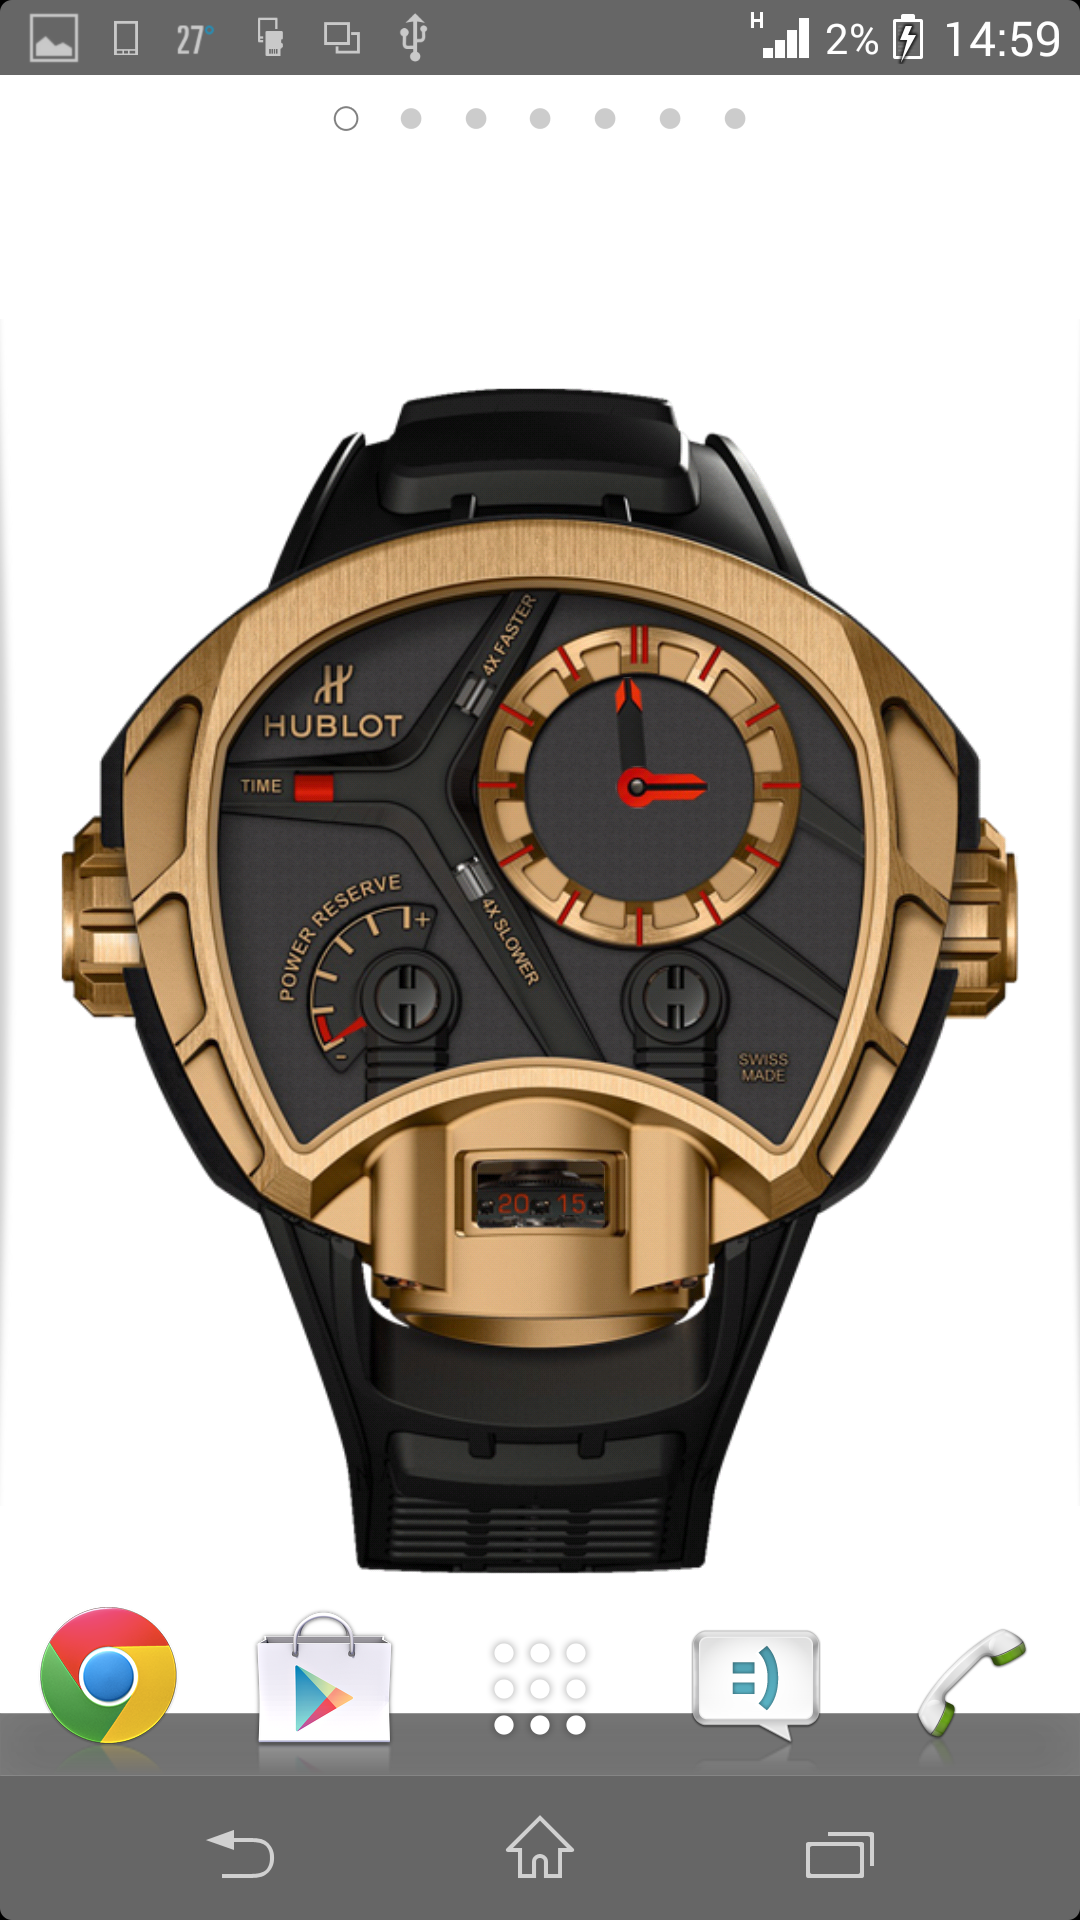 Часы - Hublot Masterpiece MP-02 бесплатно для Android